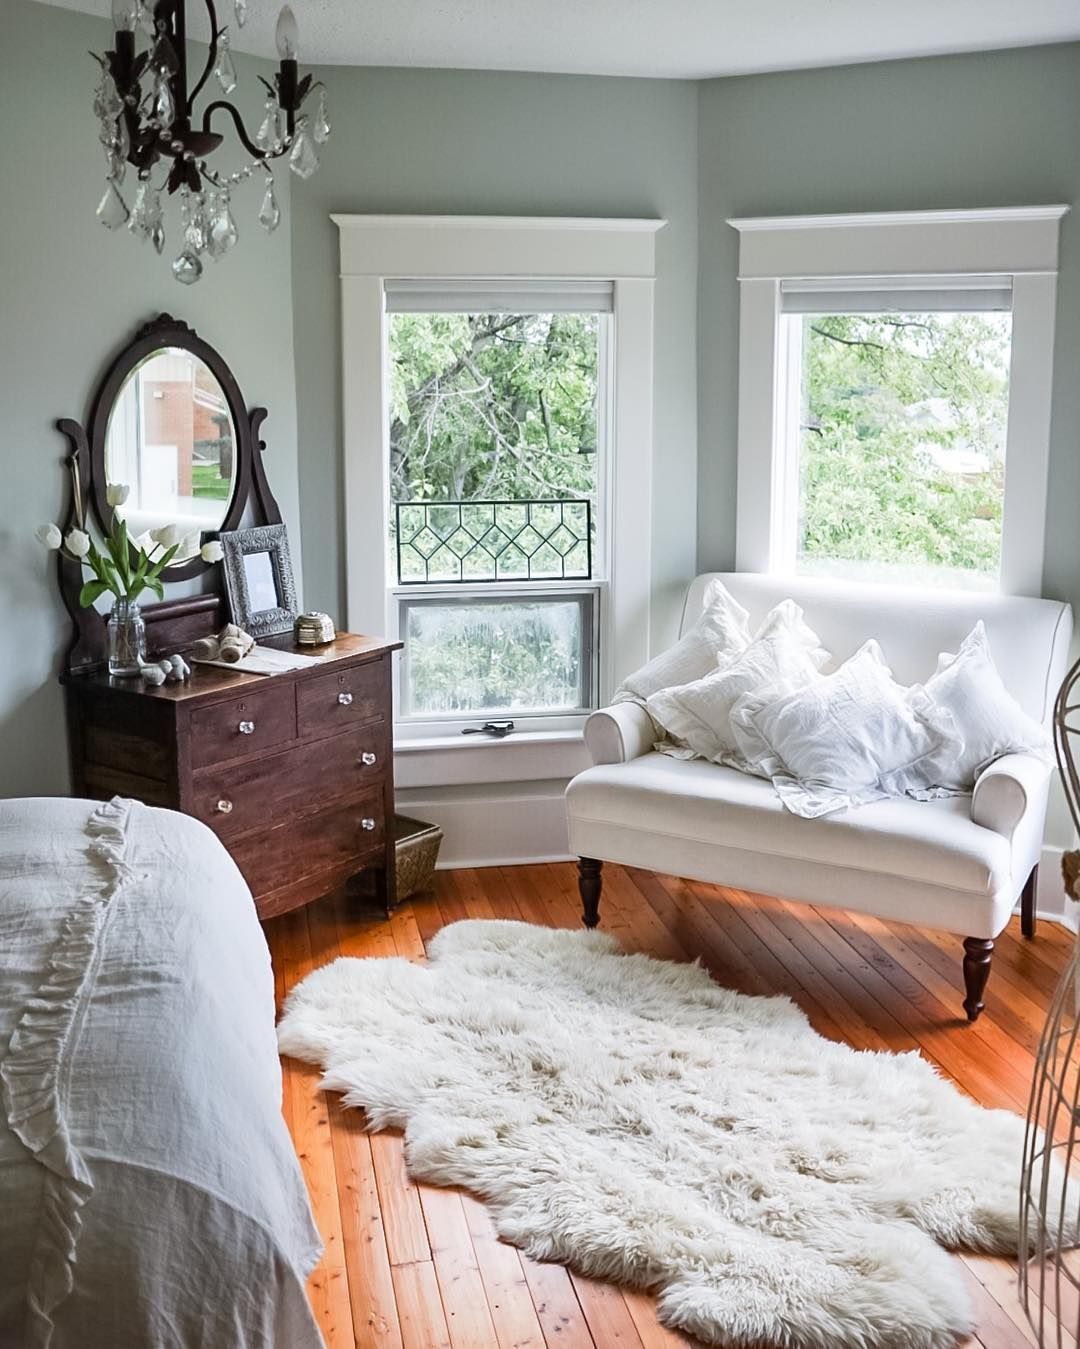 Take A Tour Through This Freshly Renovated Queen Anne Farmhouse In Rural Alberta Home Country Bedroom Home Bedroom